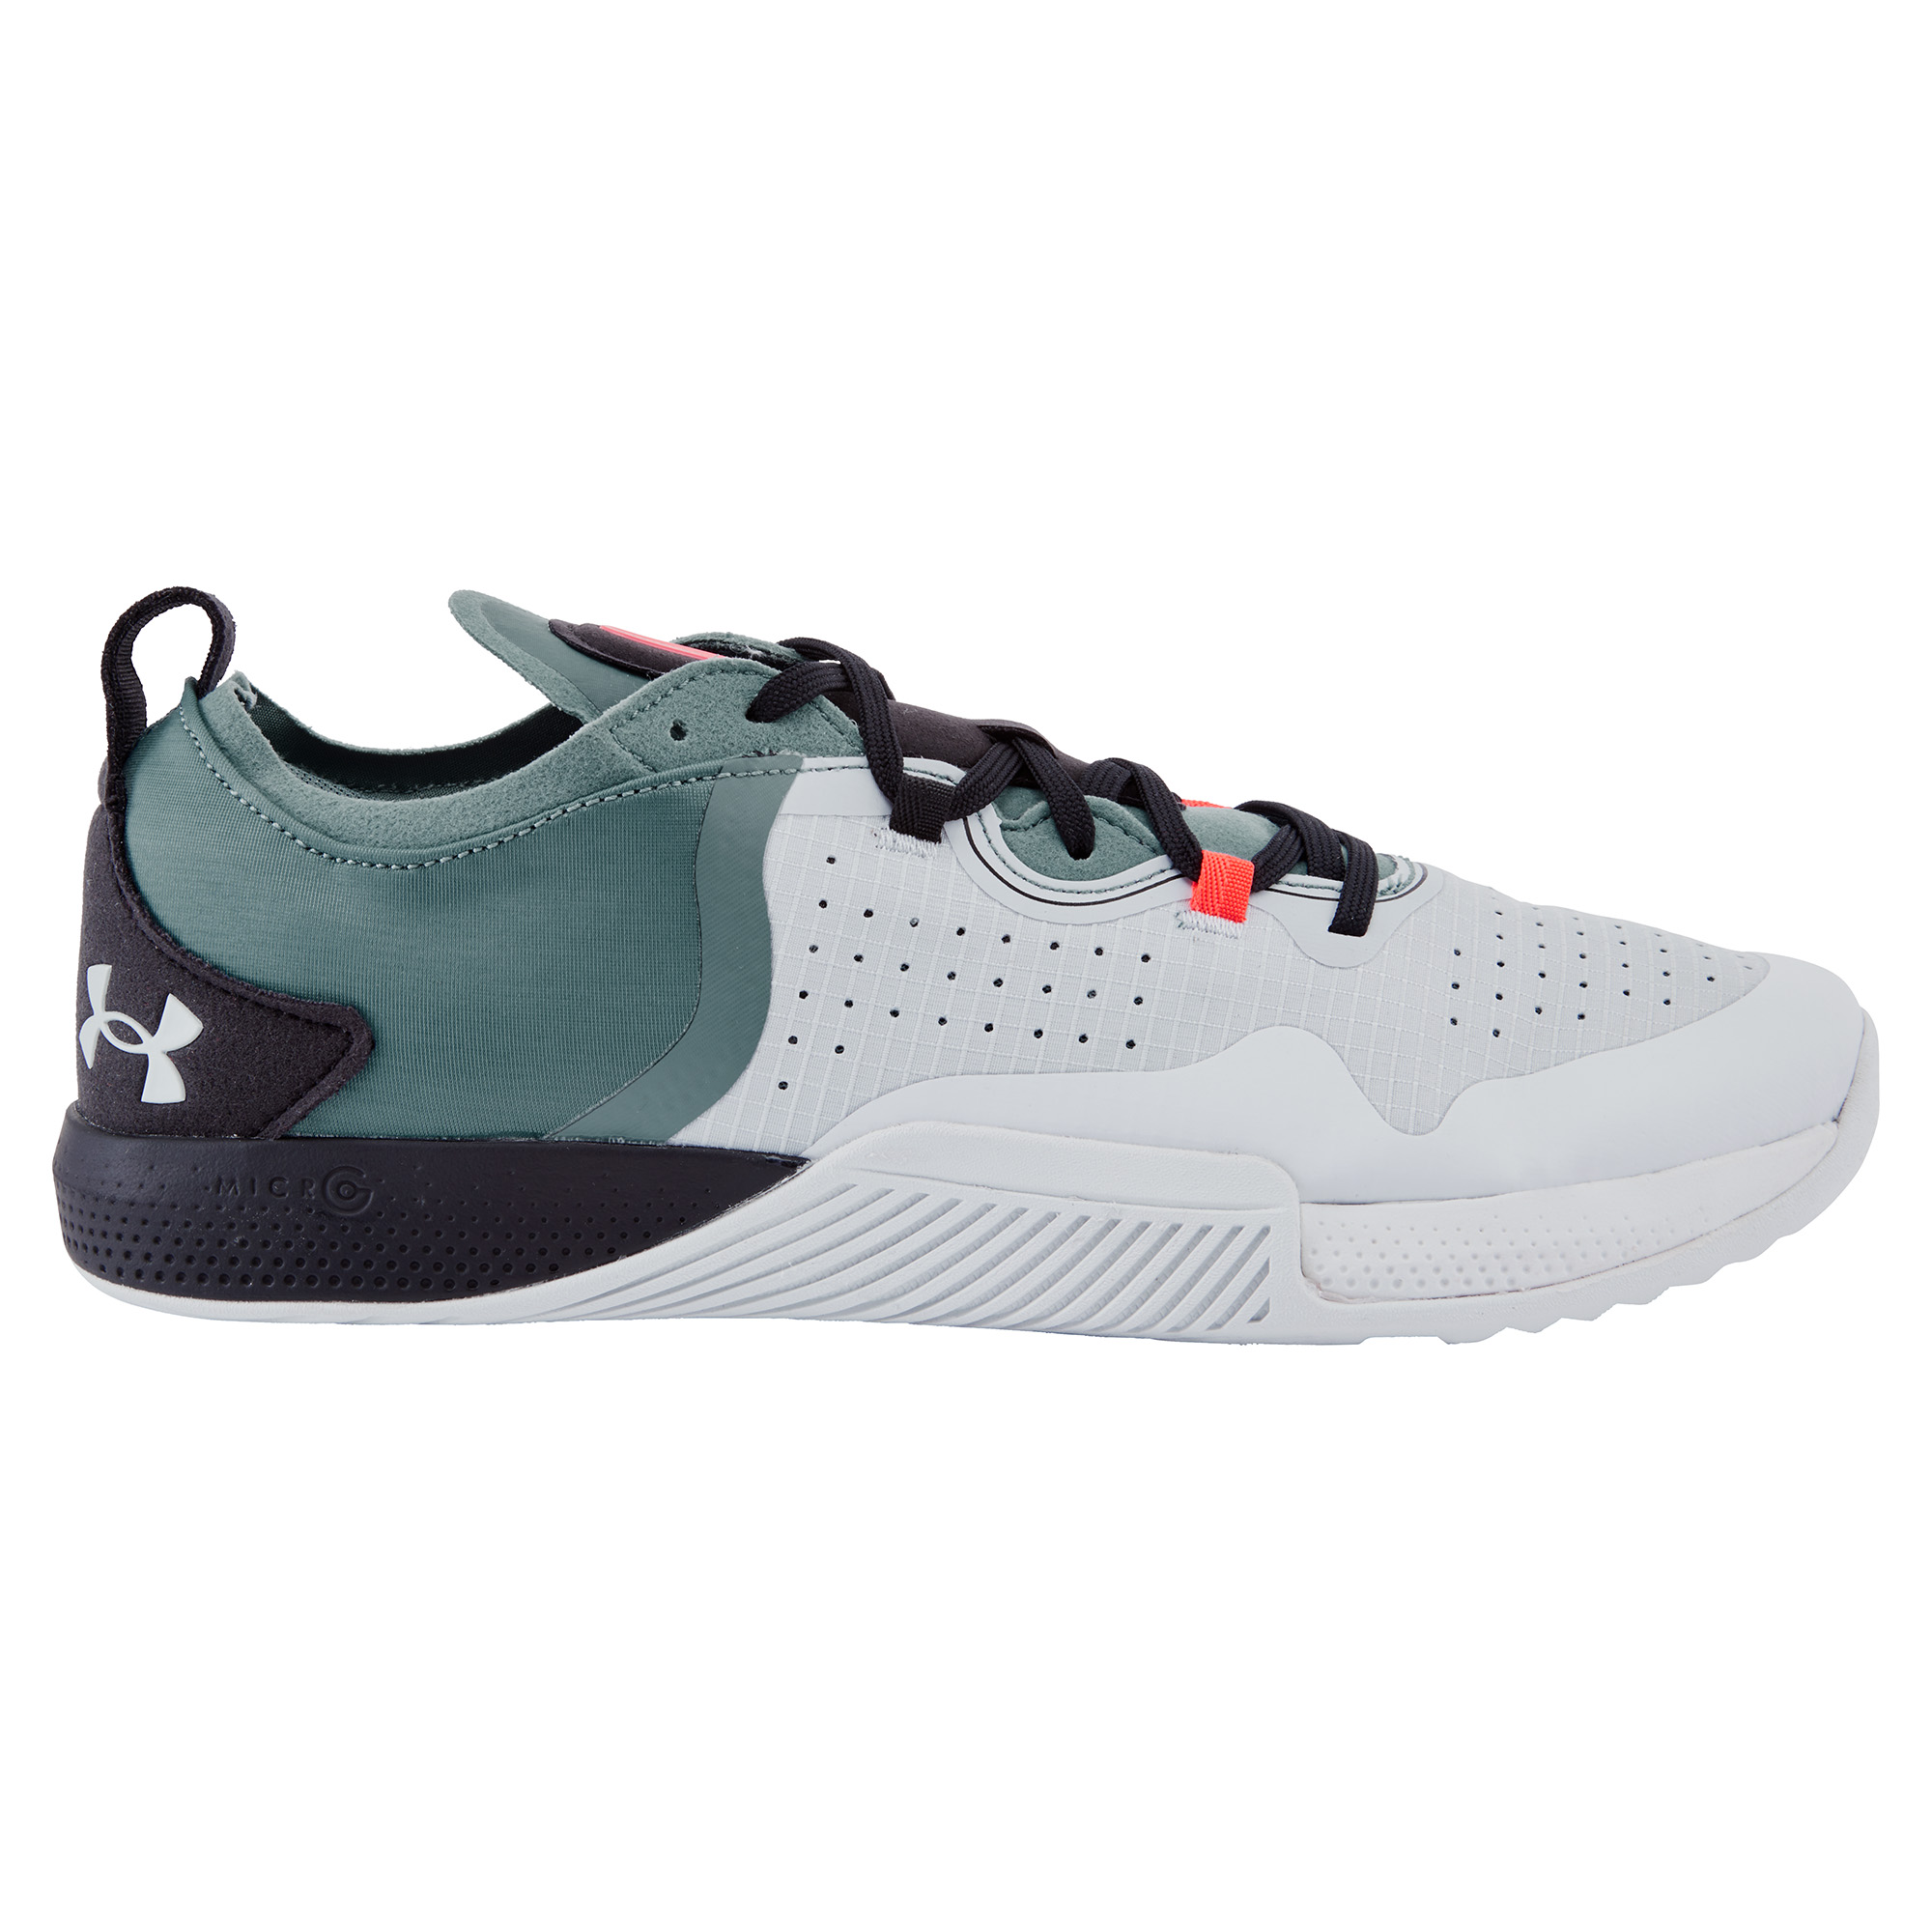 hemisferio nombre de la marca voltaje  Wiggle | Under Armour TriBase Thrive 2 Running Shoe | Running Shoes